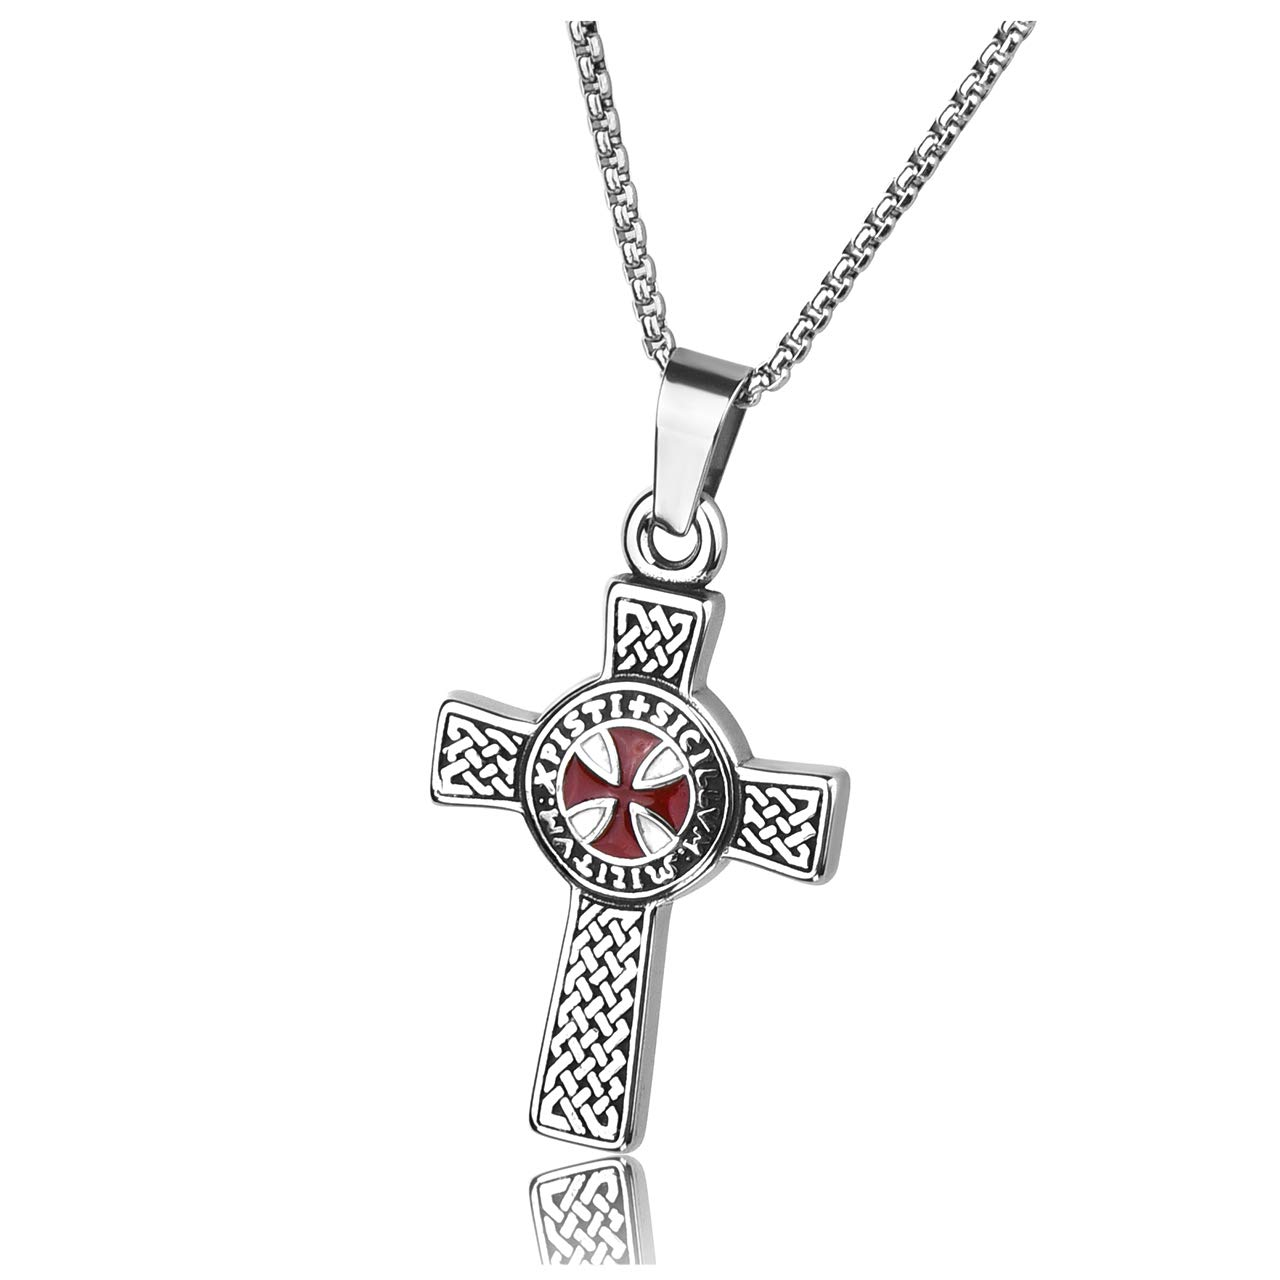 Zysta Boys Stainless Steel Knights Templar Cross Sturdy Pendant Necklace with 24 Inches Box Chain Link